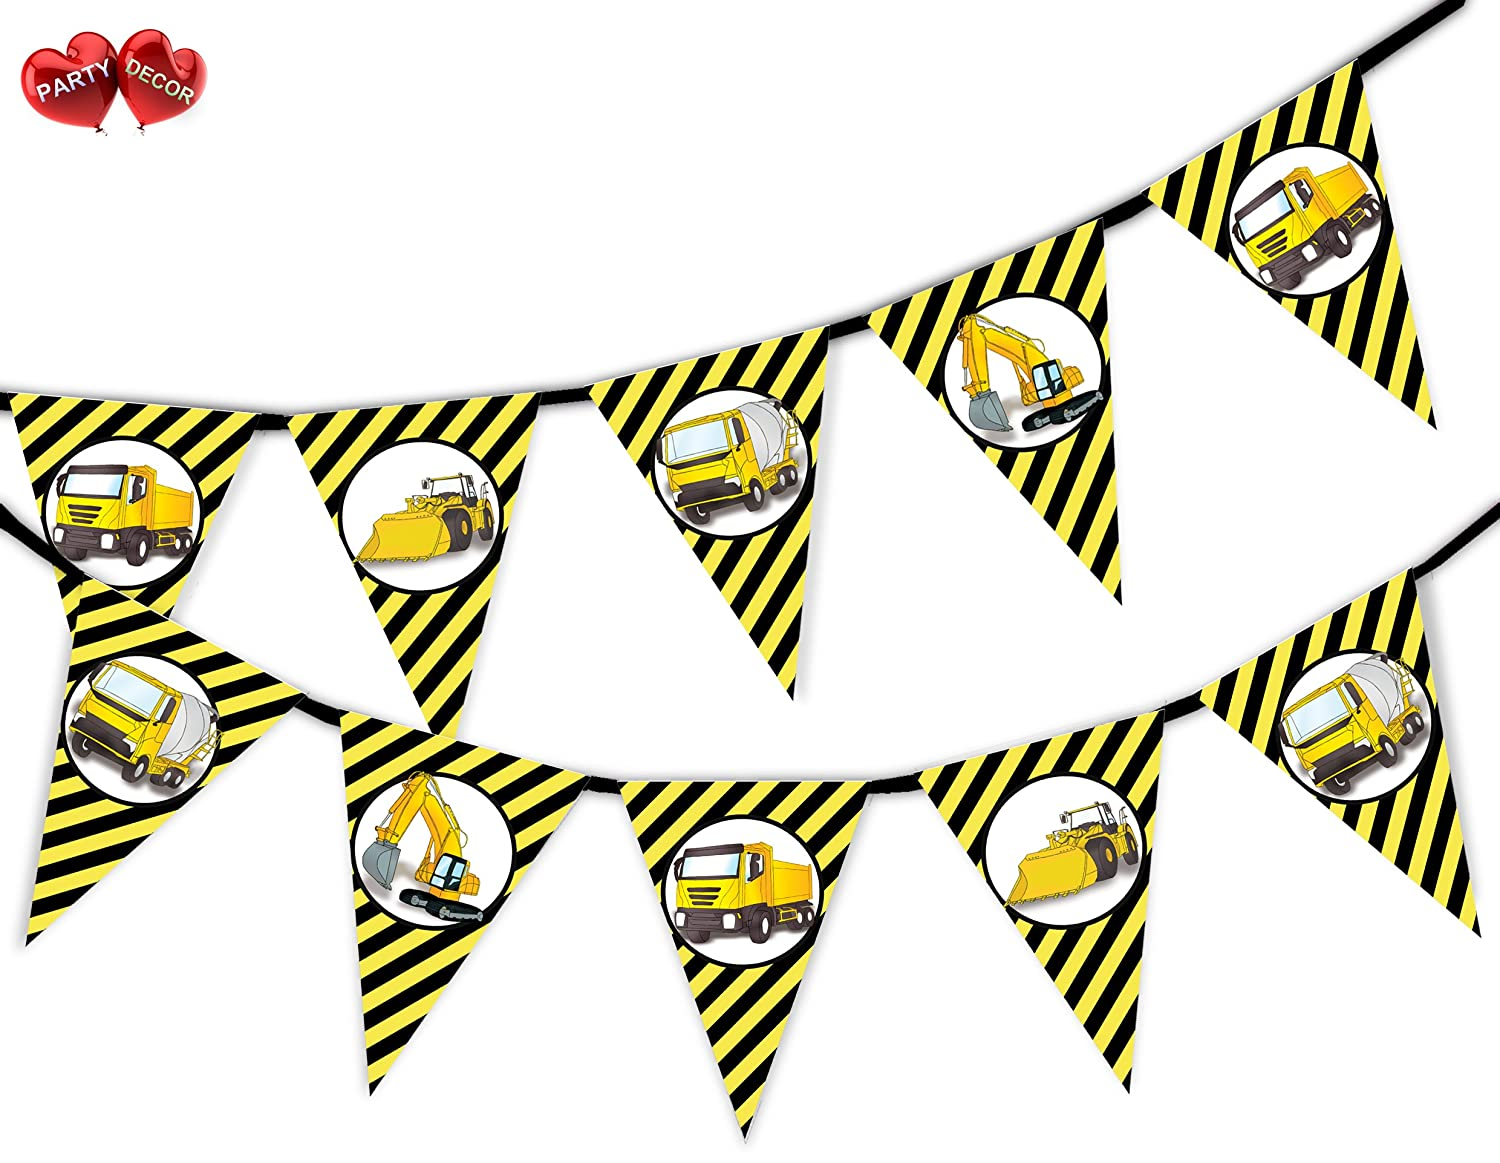 Construction Plant Vehicles Machines Bunting Banner 15 flags by PARTY DECOR